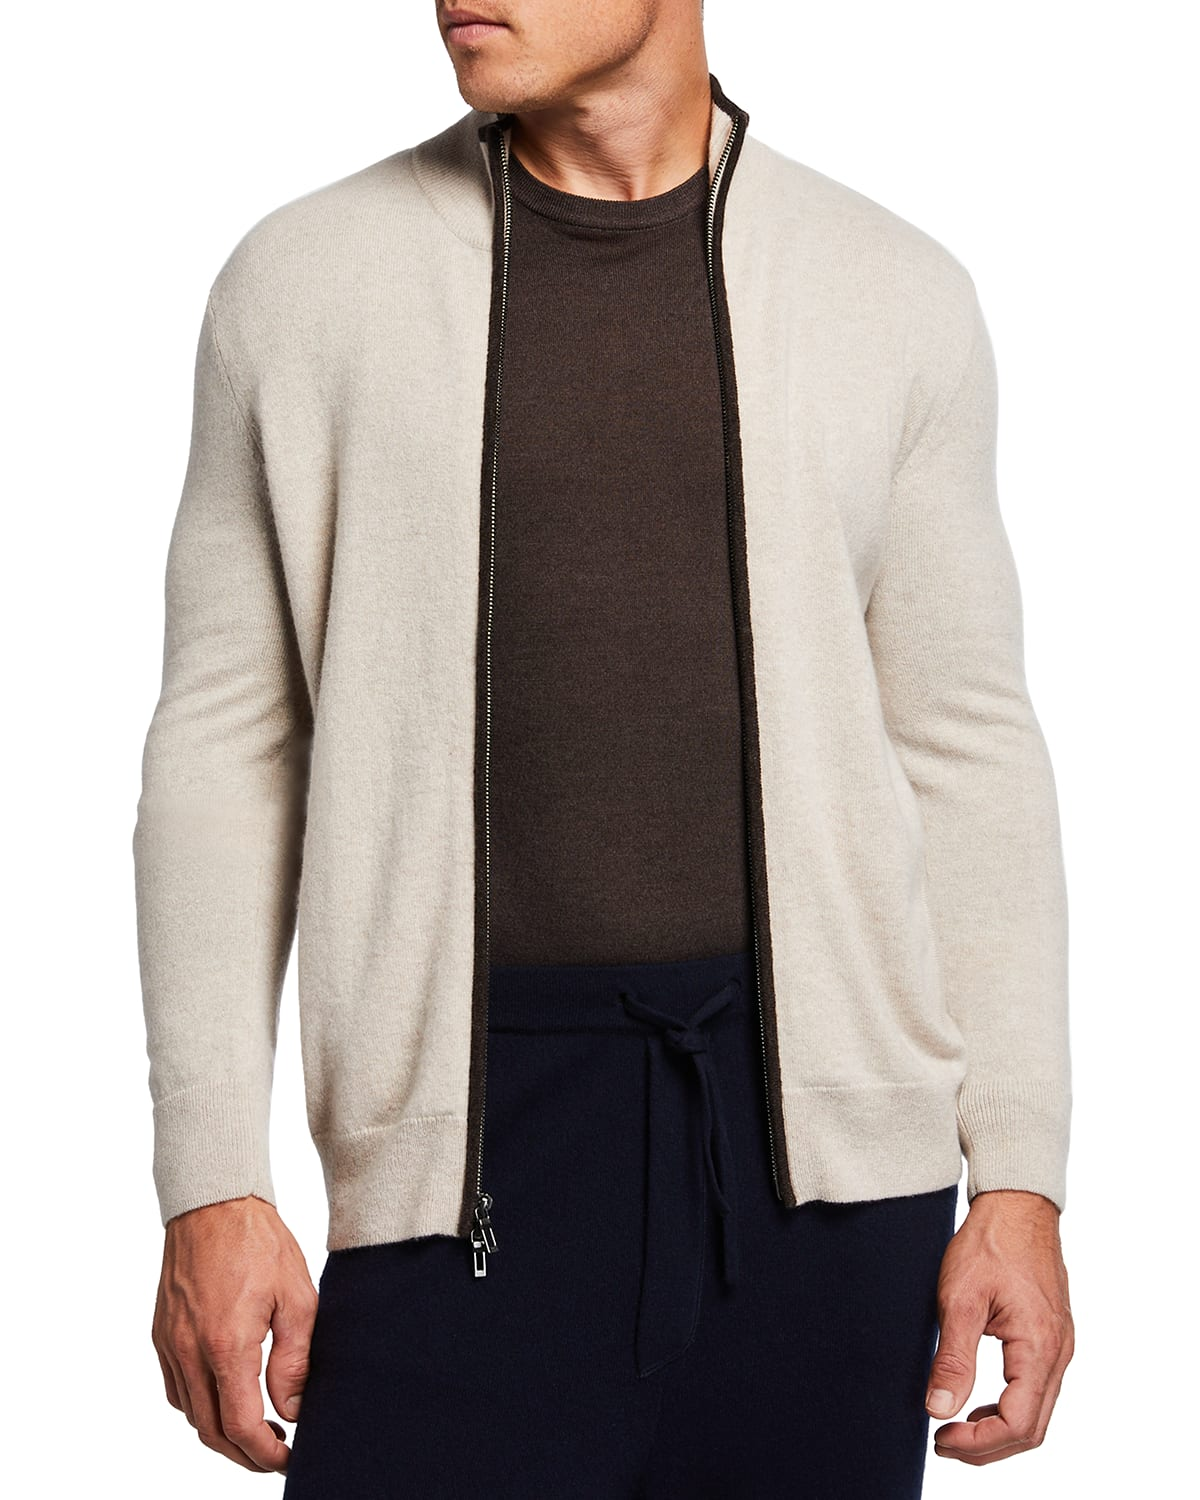 Men's Recycled Cashmere Full-Zip Sweater